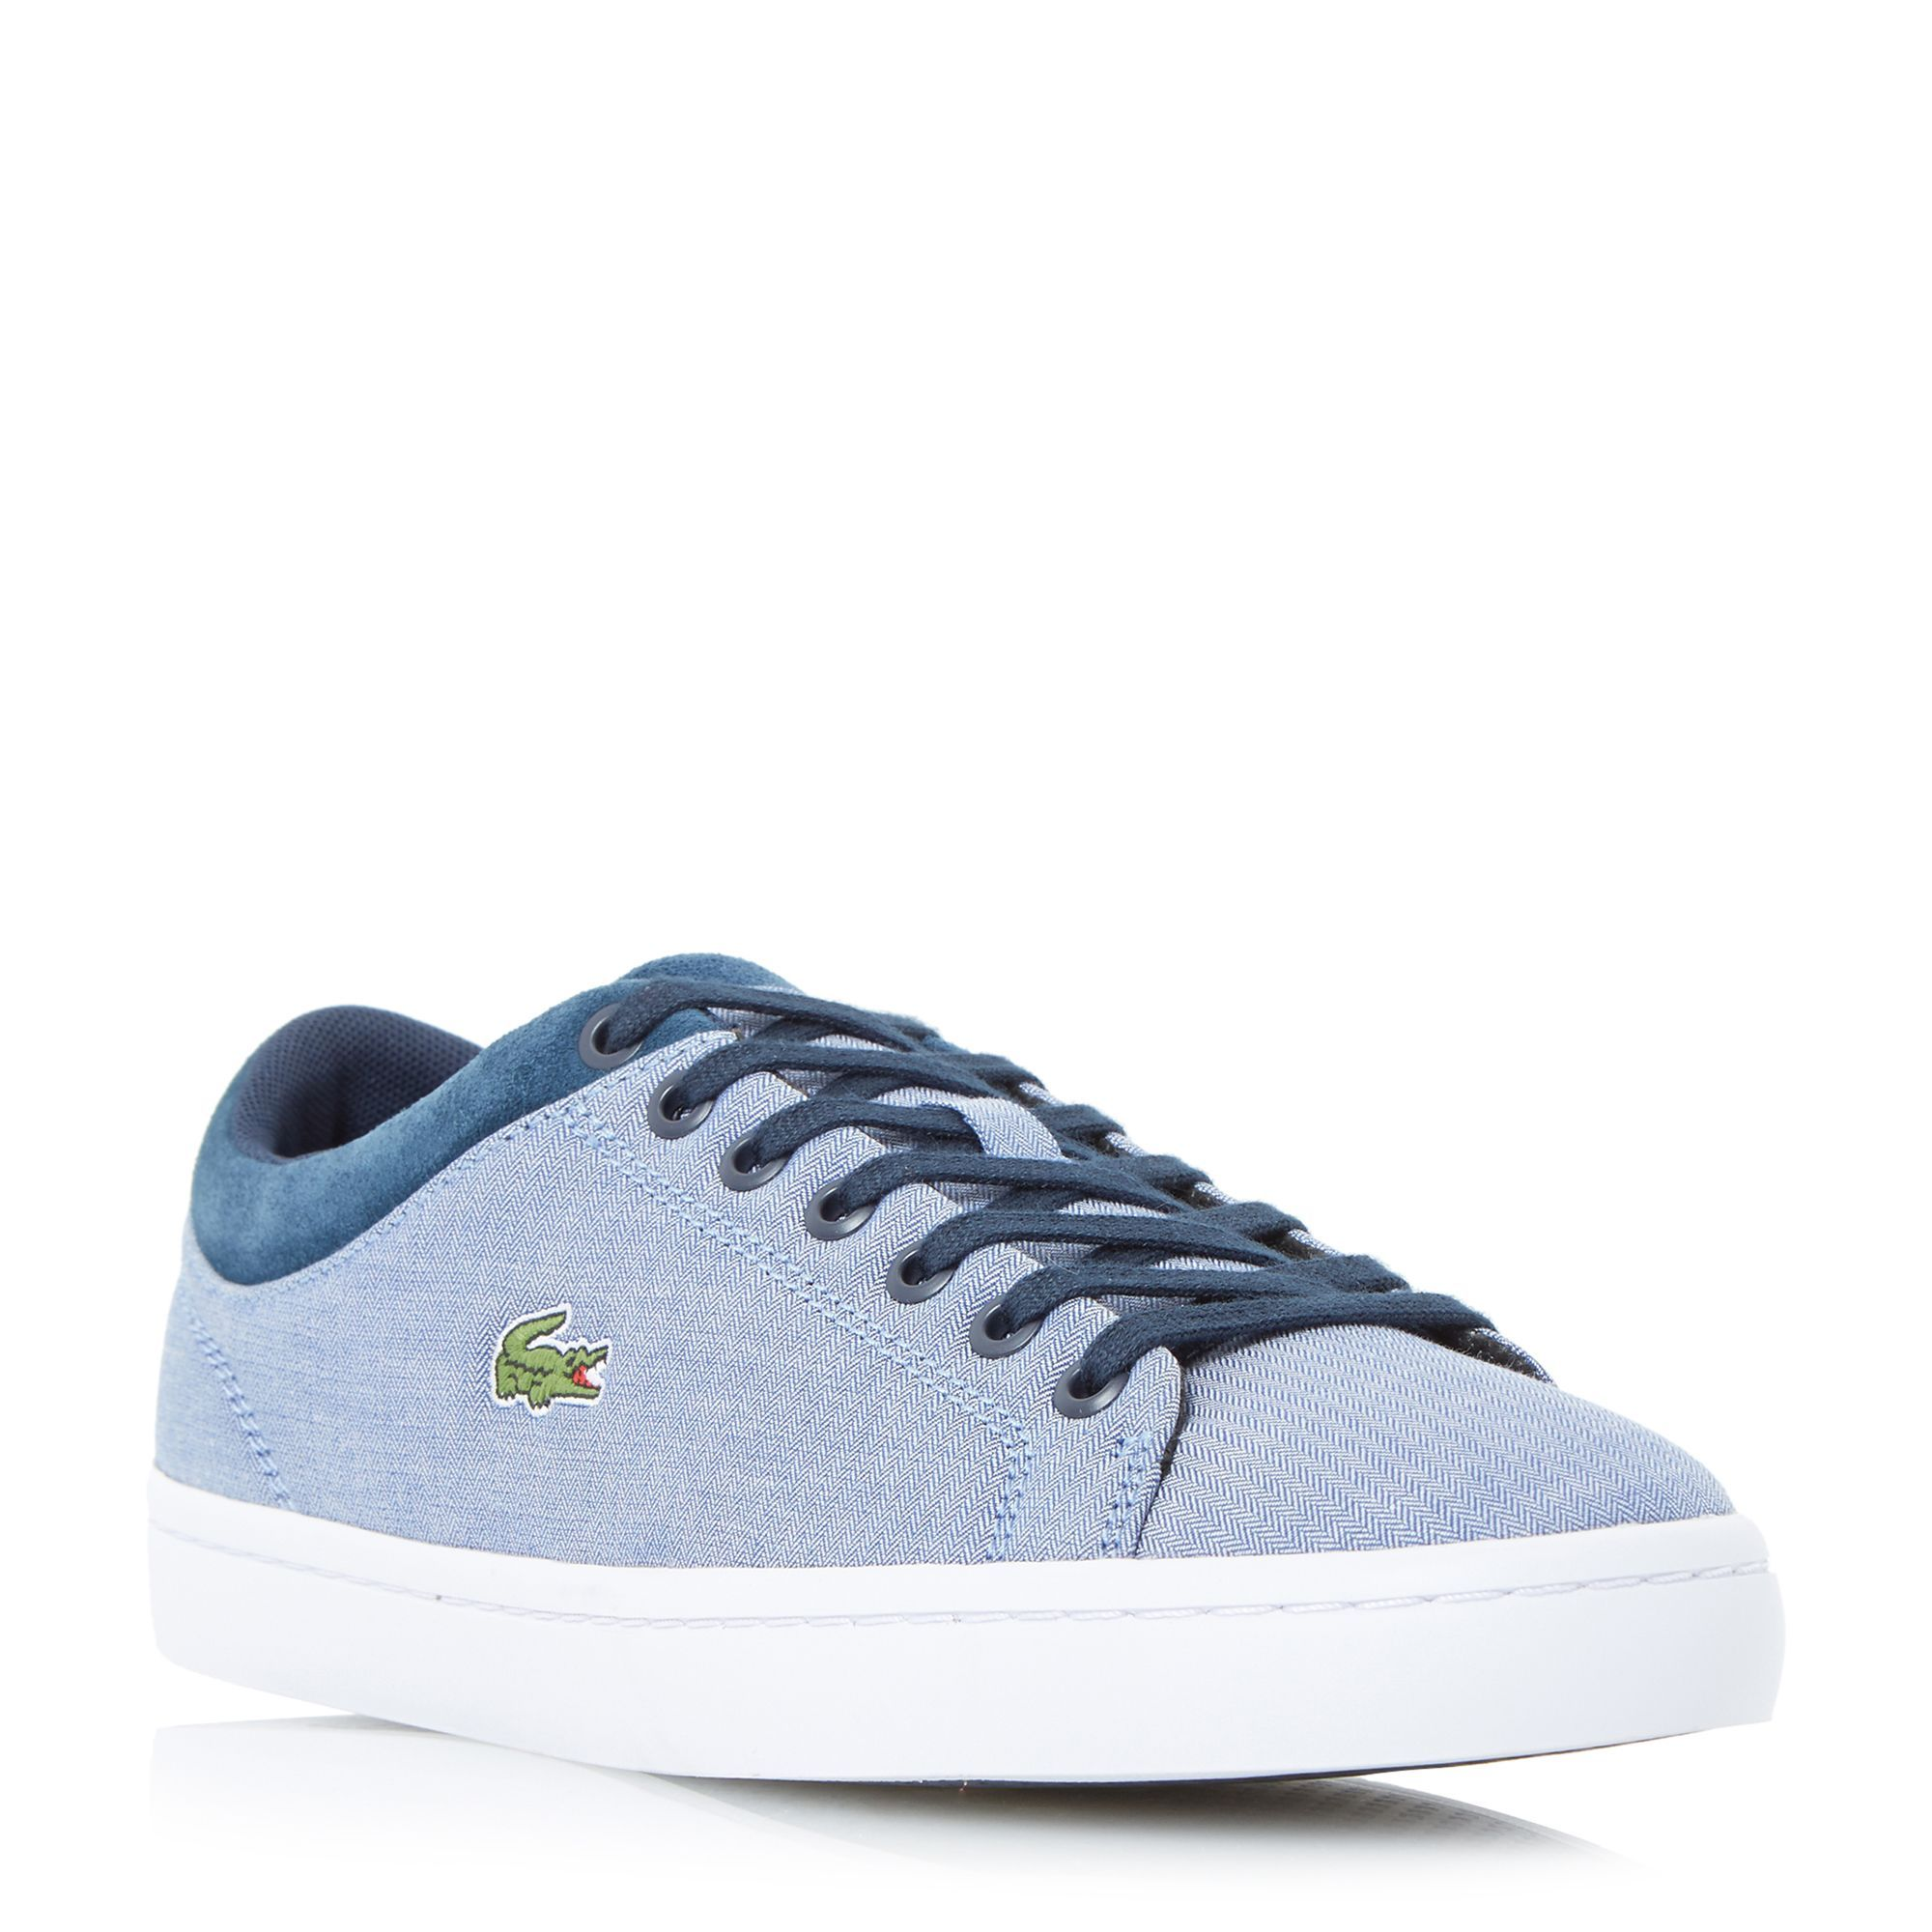 Lacoste Straightset SPT Lace Up Trainer, Navy